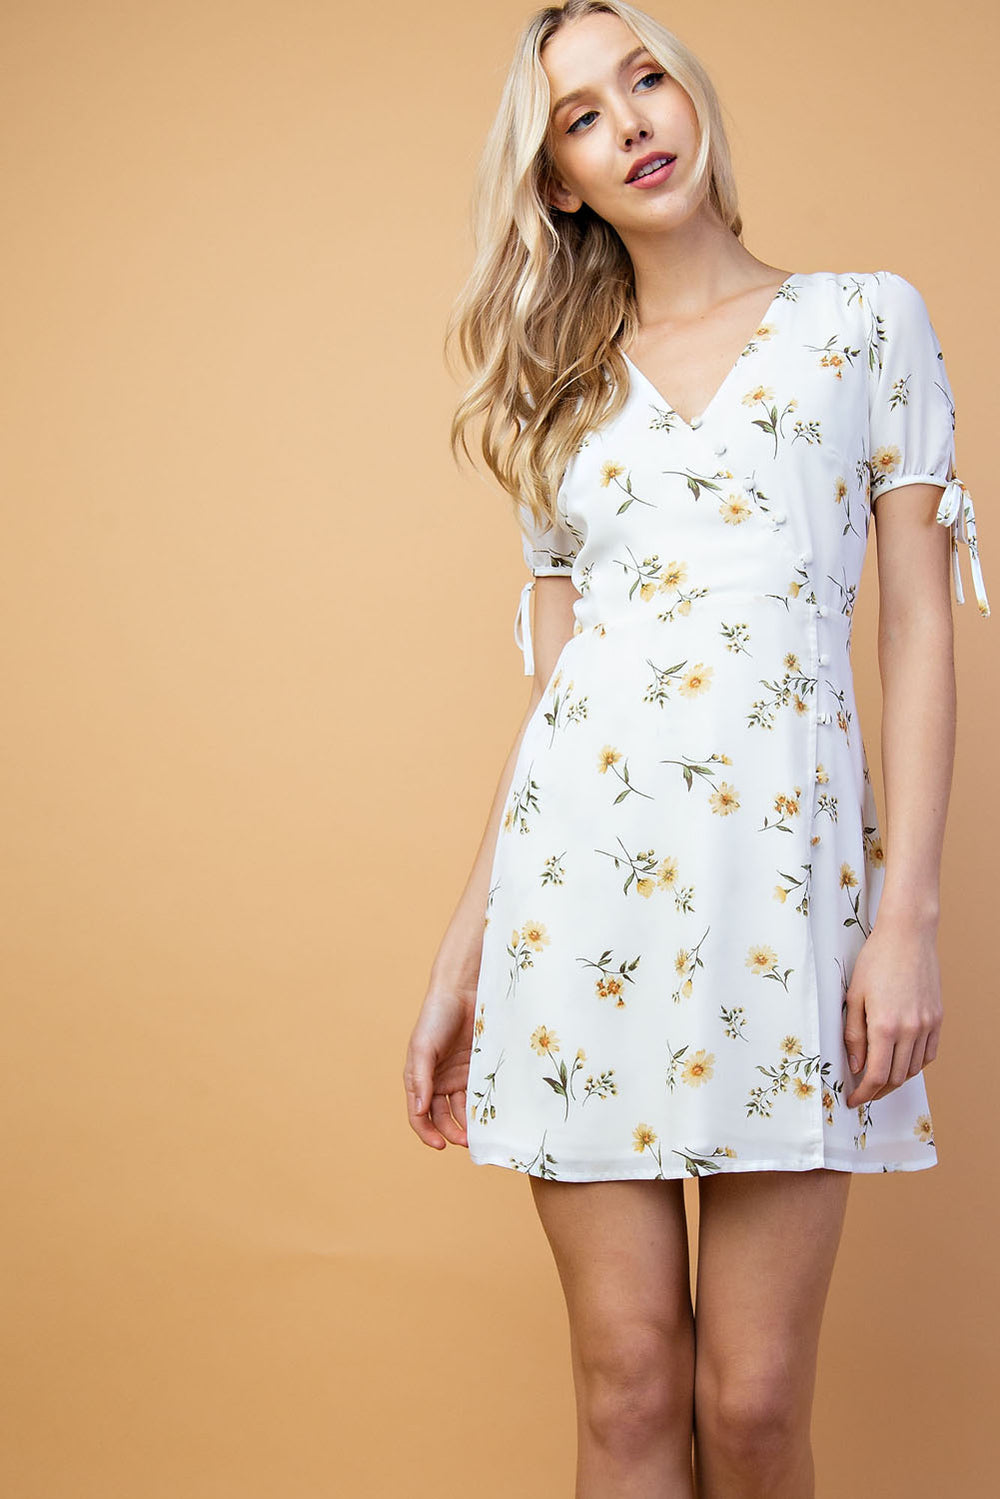 Melanie Floral Mini Dress With Print Half Sleeve Button Down In White-Multi - Siin Bees